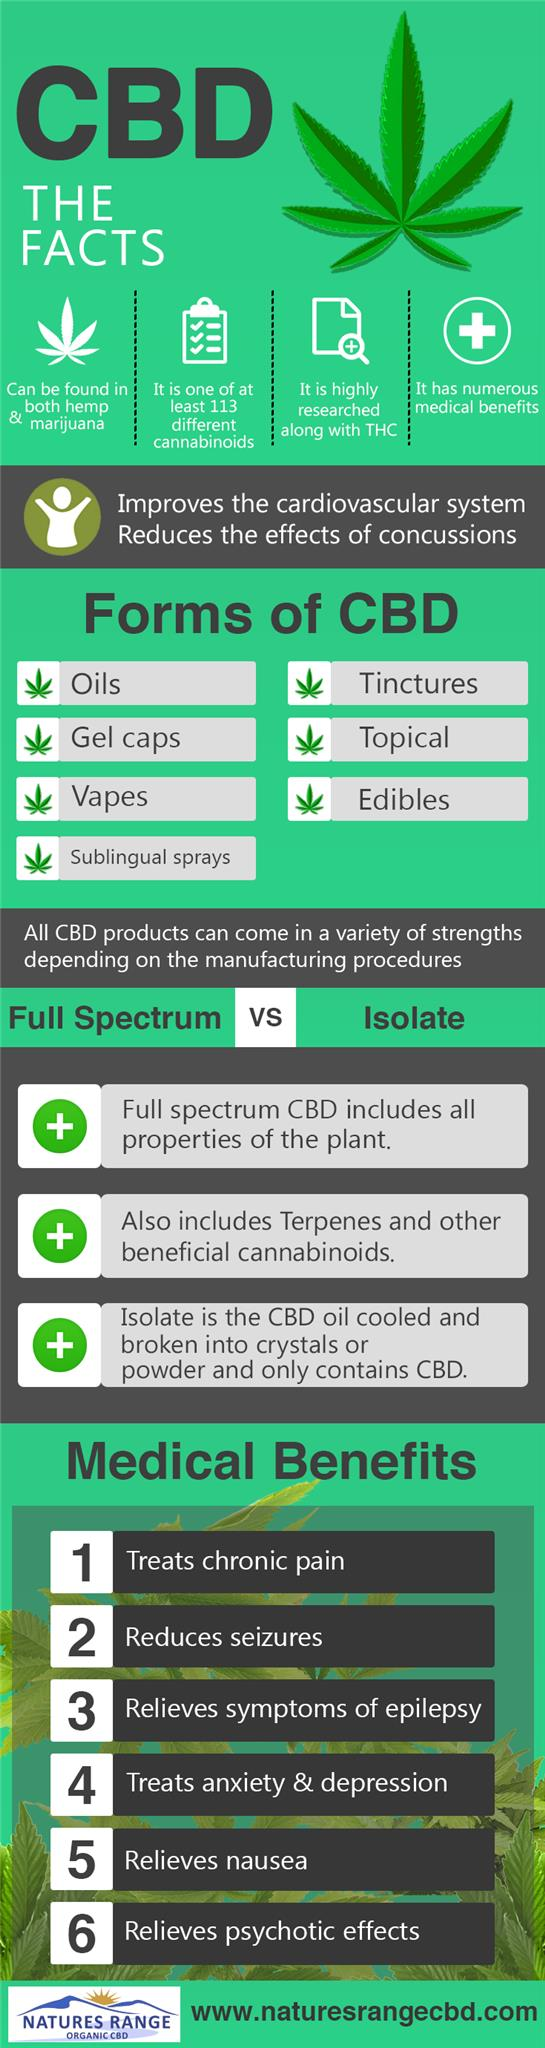 CBD_facts-infographic-plaza